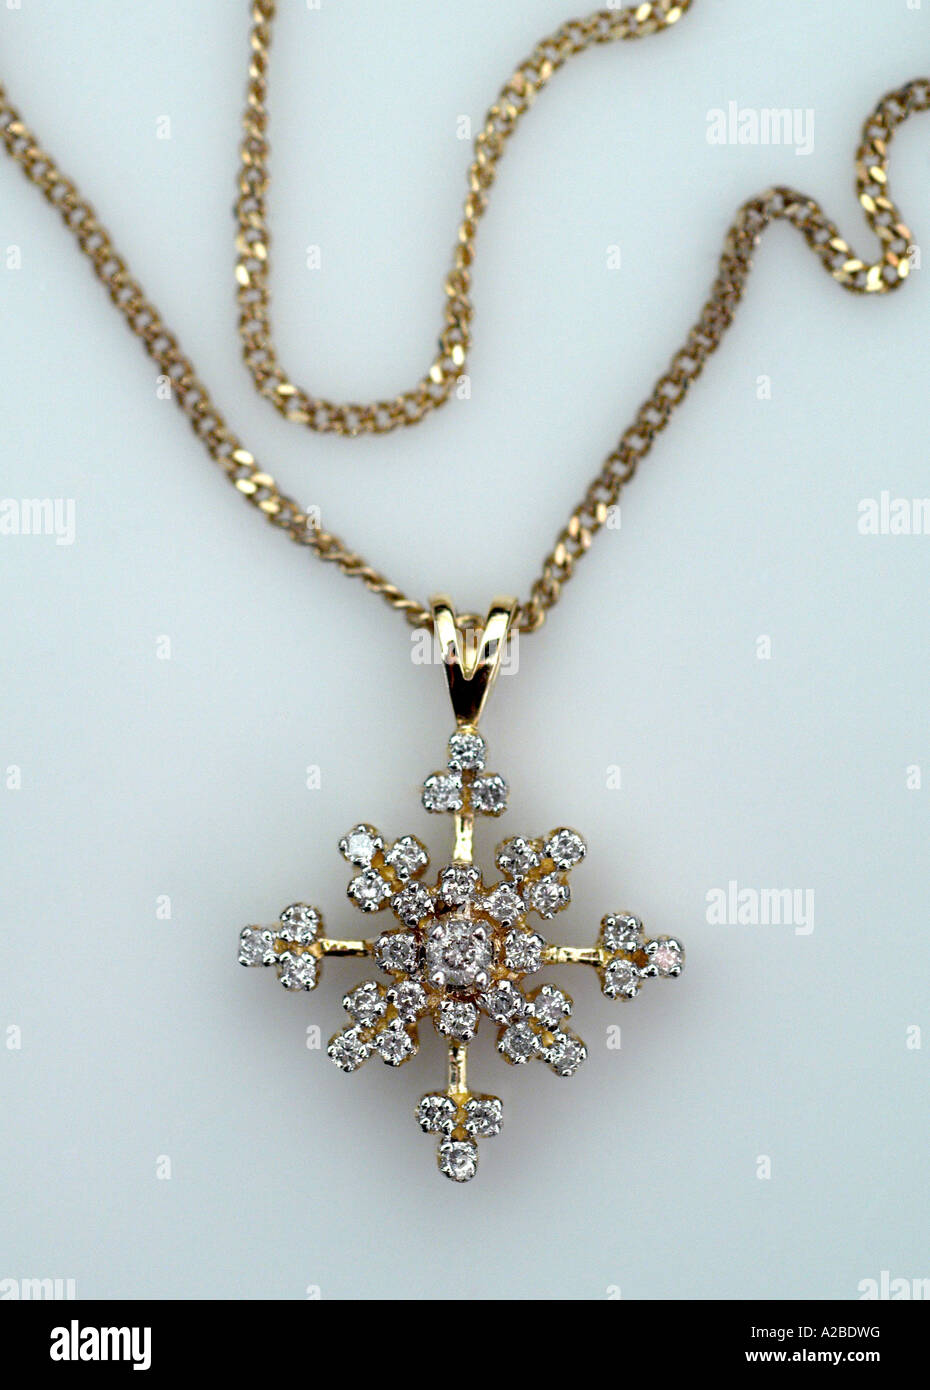 Vintage Diamond and Gold Necklace with Dangle - Stock Image